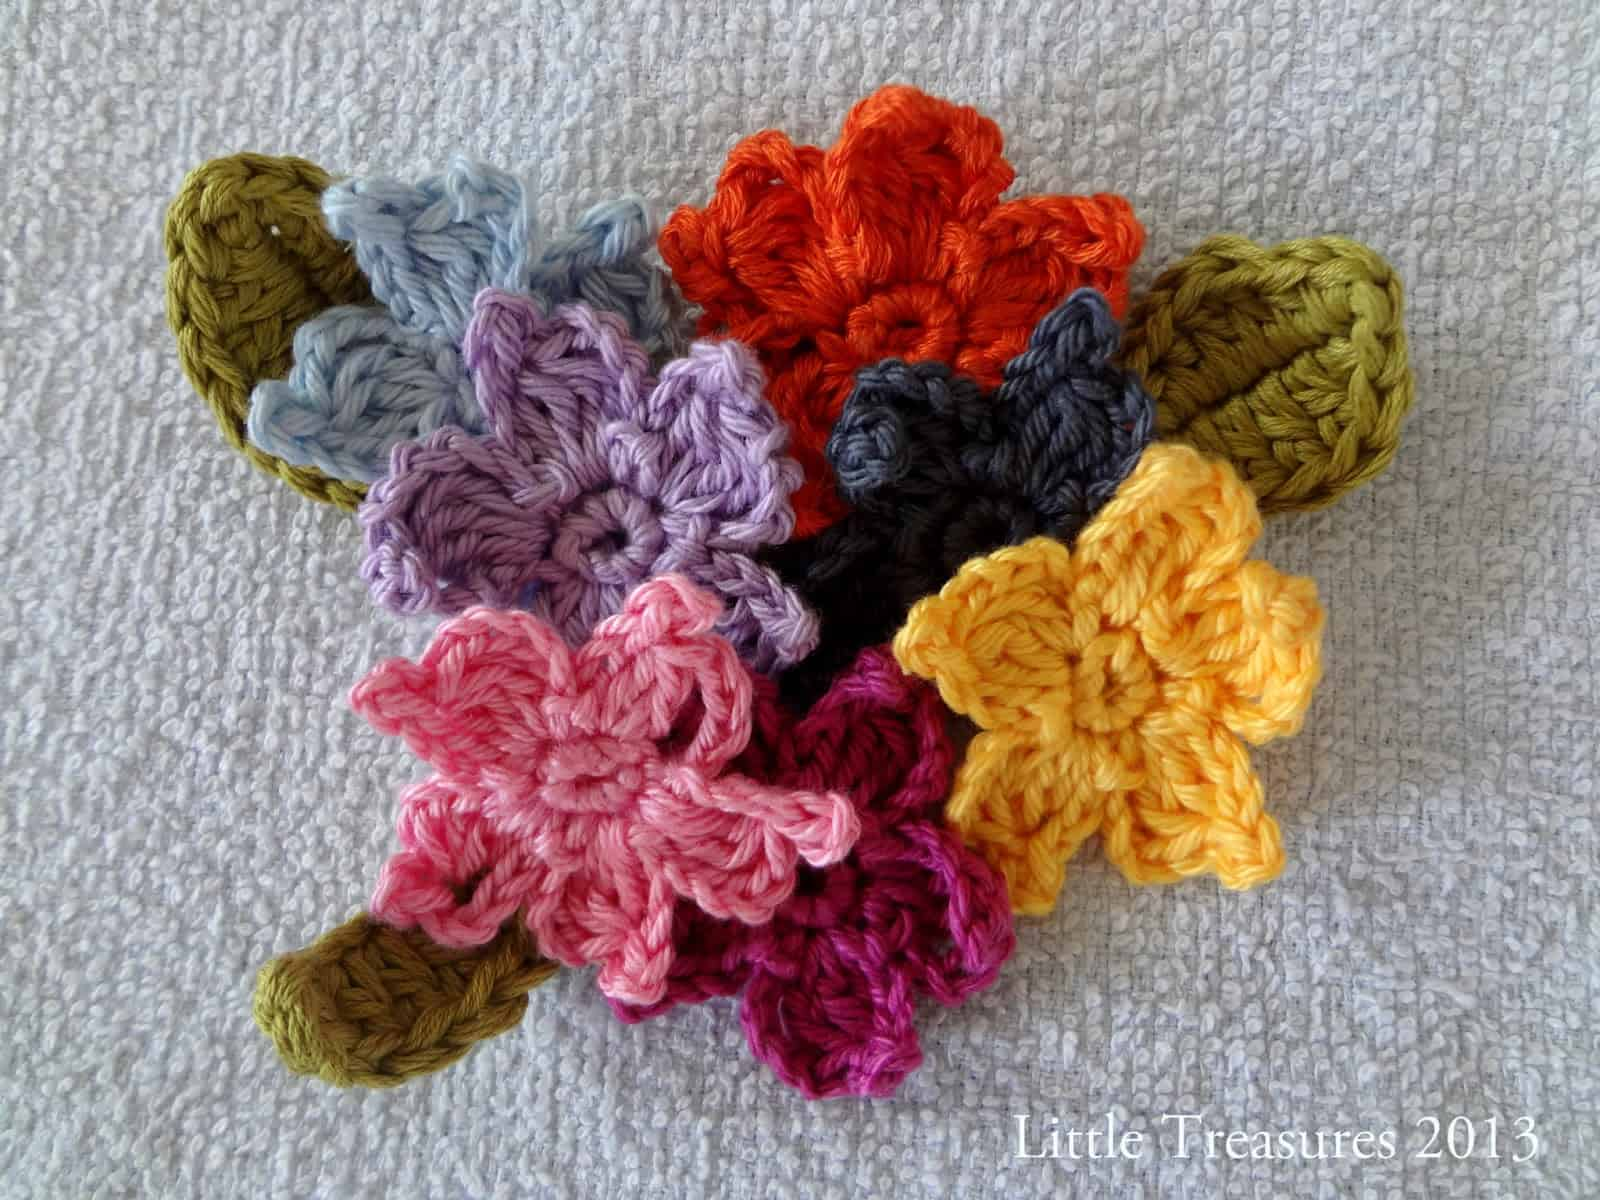 Crocheted ademium flowers